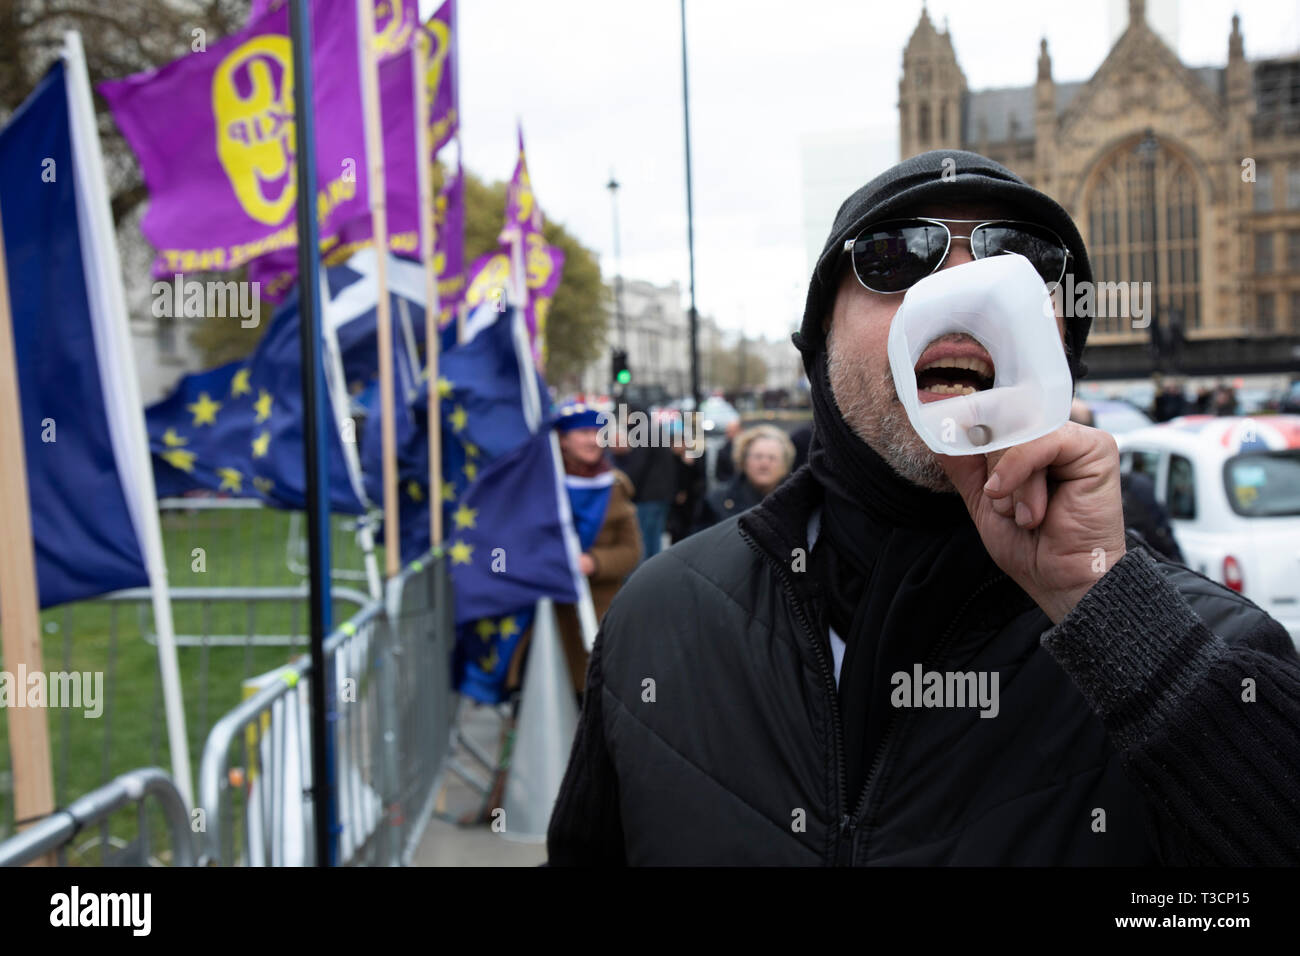 Anti Brexit, protester using a milk carton as a loud hailer in Westminster as the leader of the opposition and the Prime Minister continue talks to solve the Brexit Withdrawal Agreement on 4th April 2019 in London, England, United Kingdom. With just over two weeks until the UK is supposed to be leaving the European Union, the final result still hangs in the balance. - Stock Image